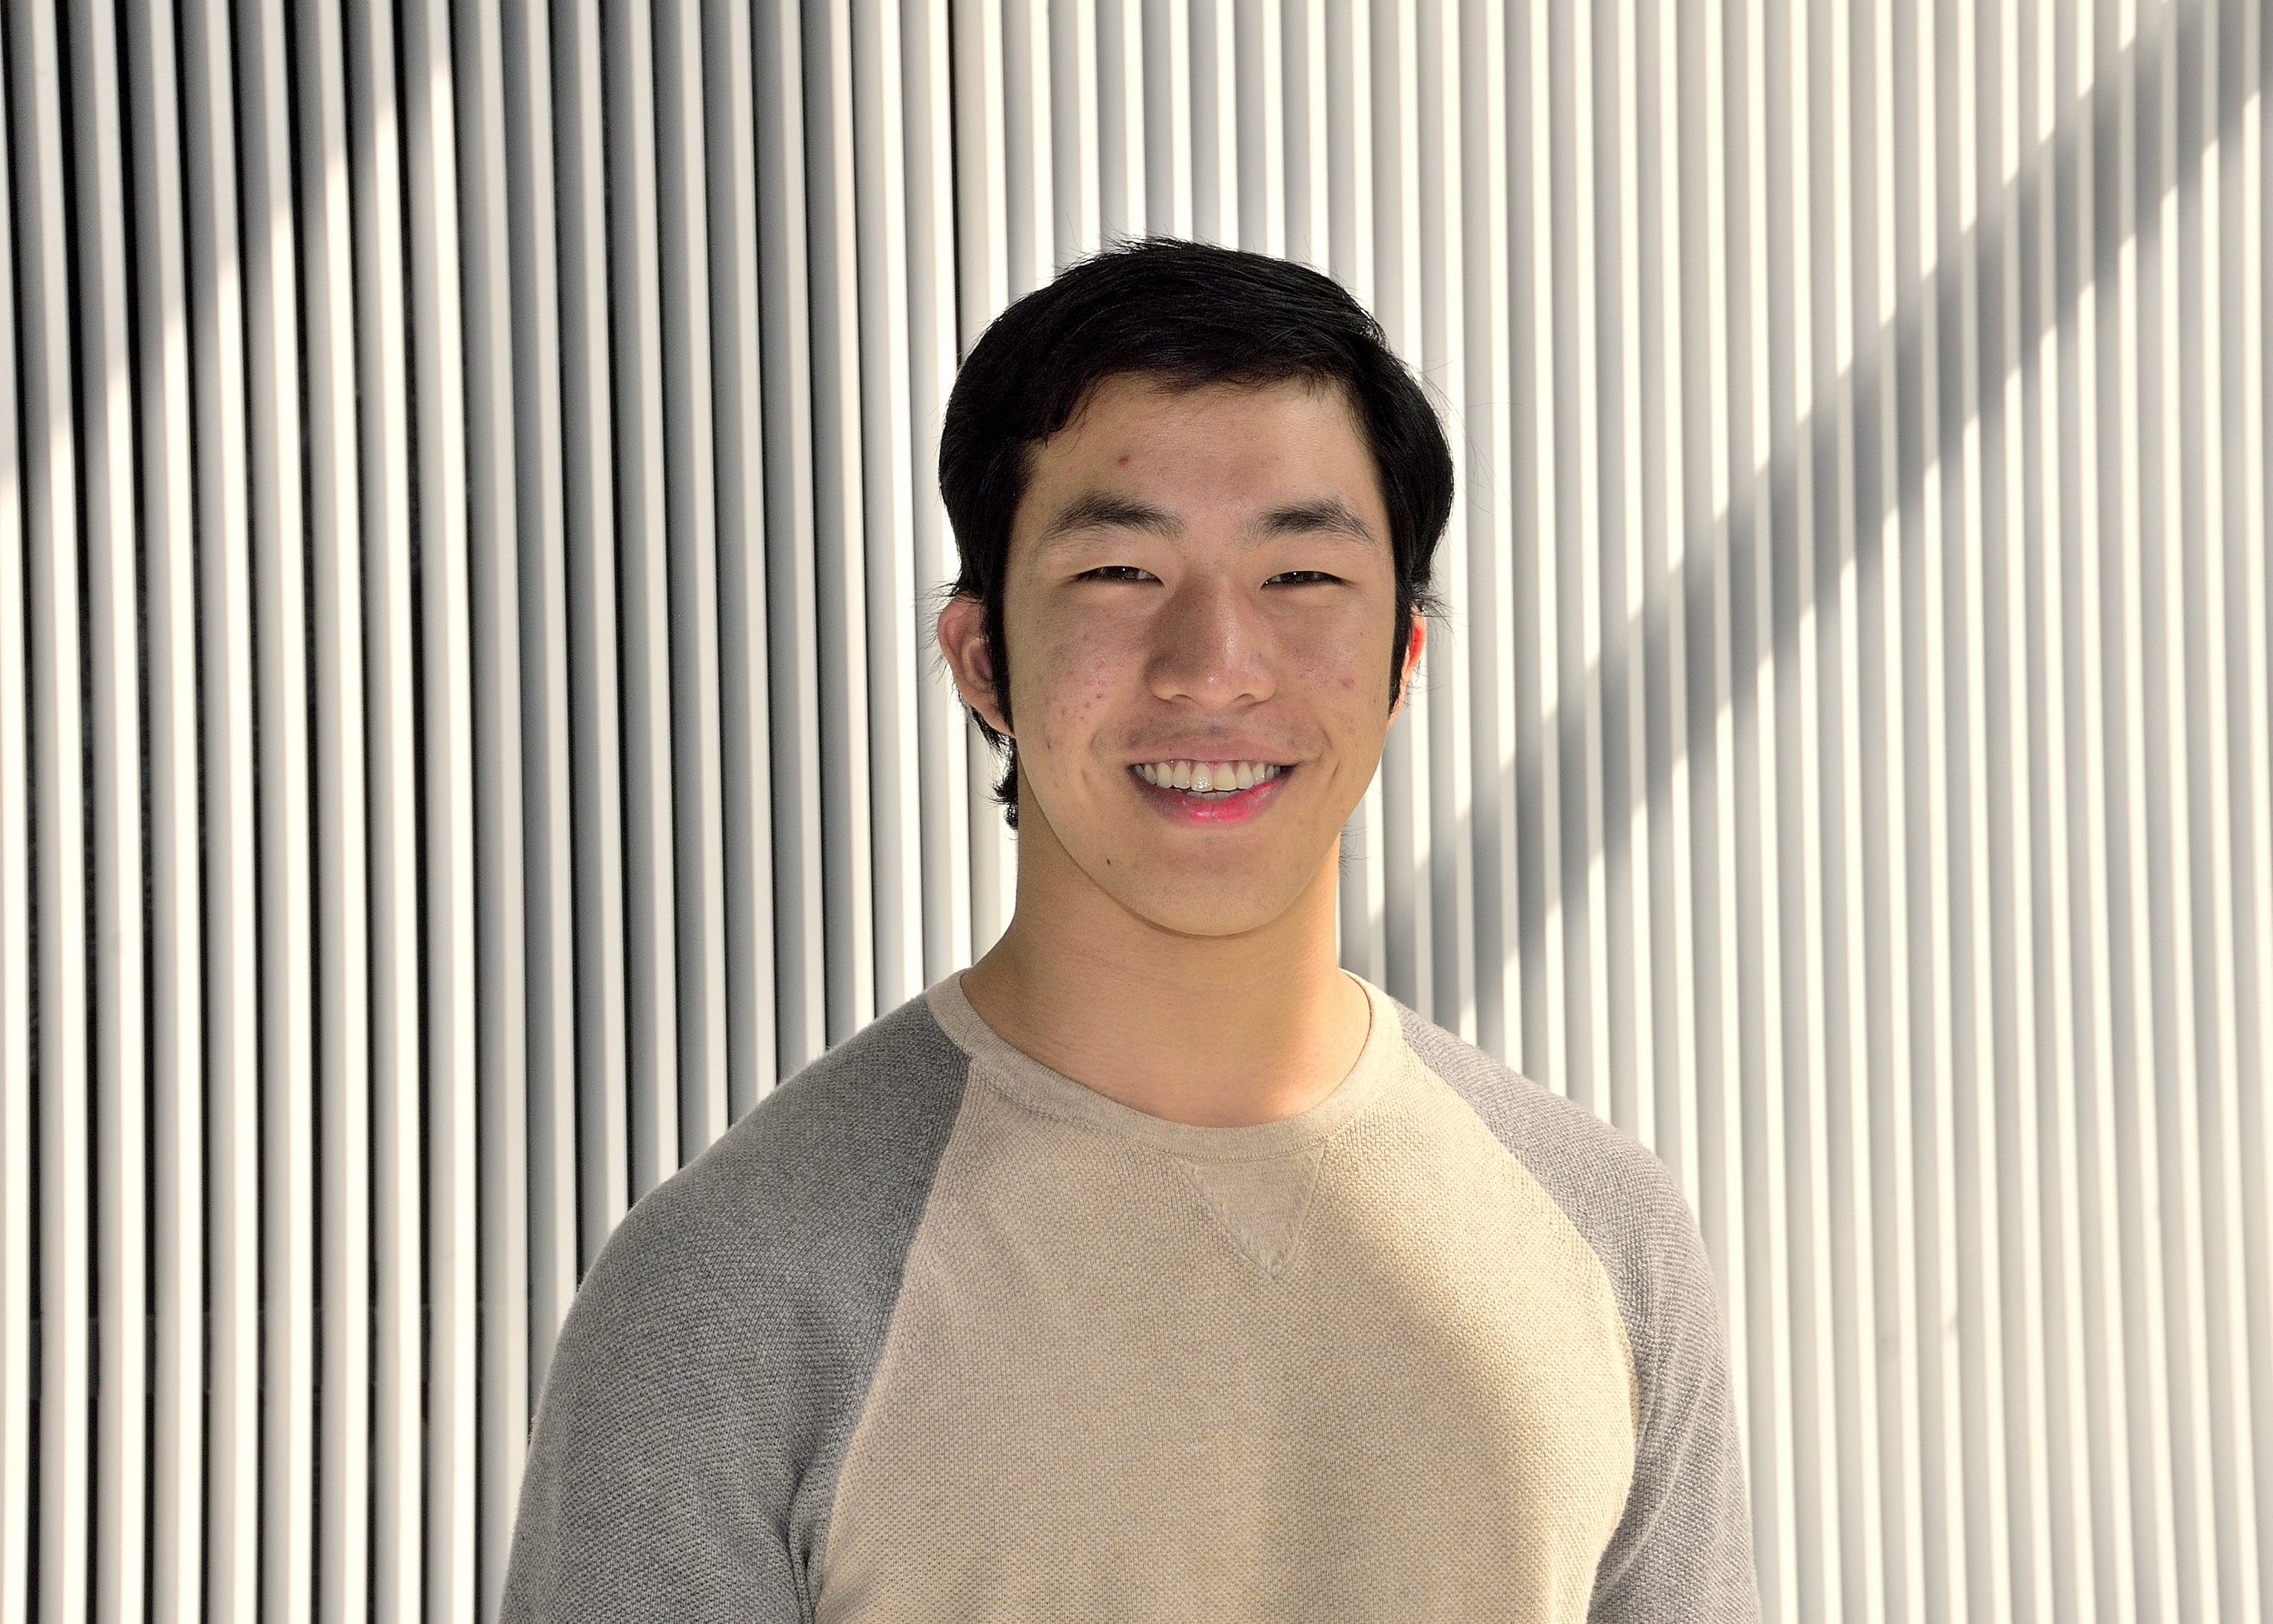 MIT MEDIA LAB KID    Kevin Zeng Hu